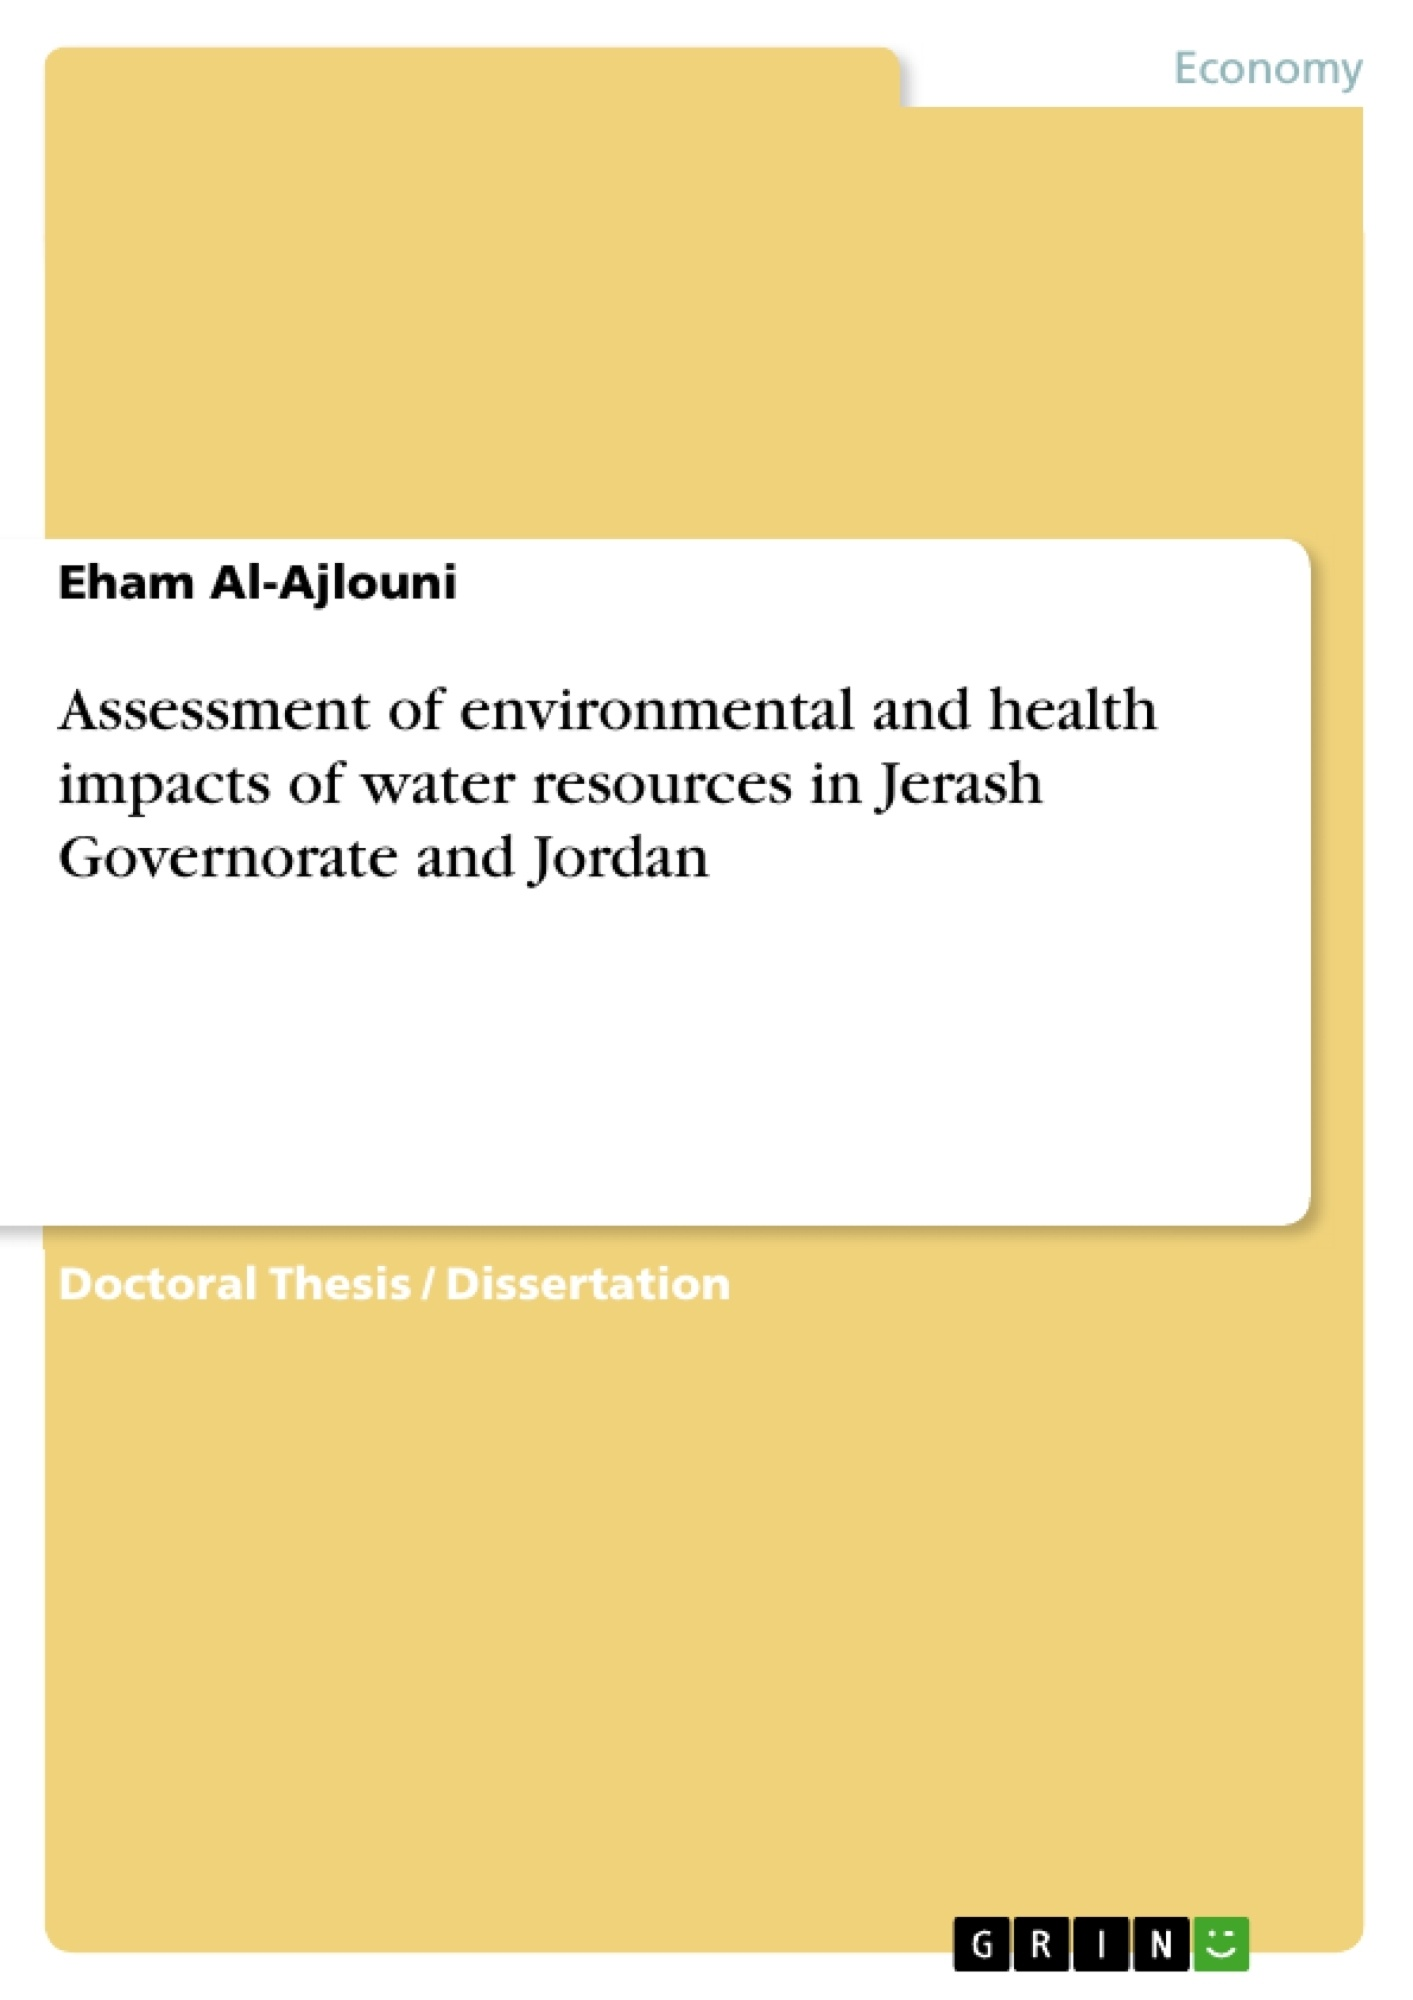 Title: Assessment of environmental and health impacts of water resources in Jerash Governorate and Jordan